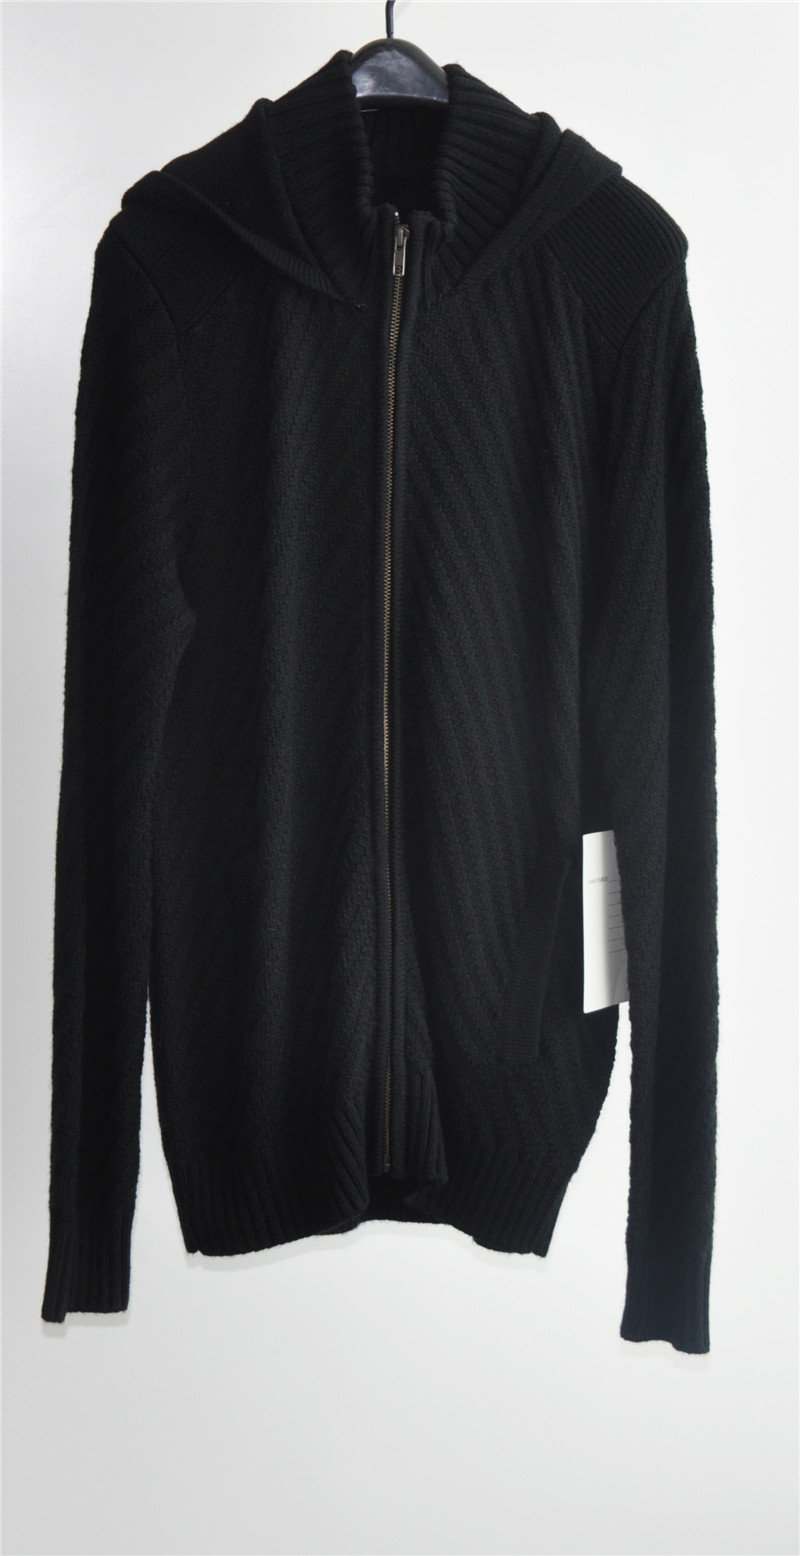 Men Winter Knitted Unisex Long Cardigan with Zipper